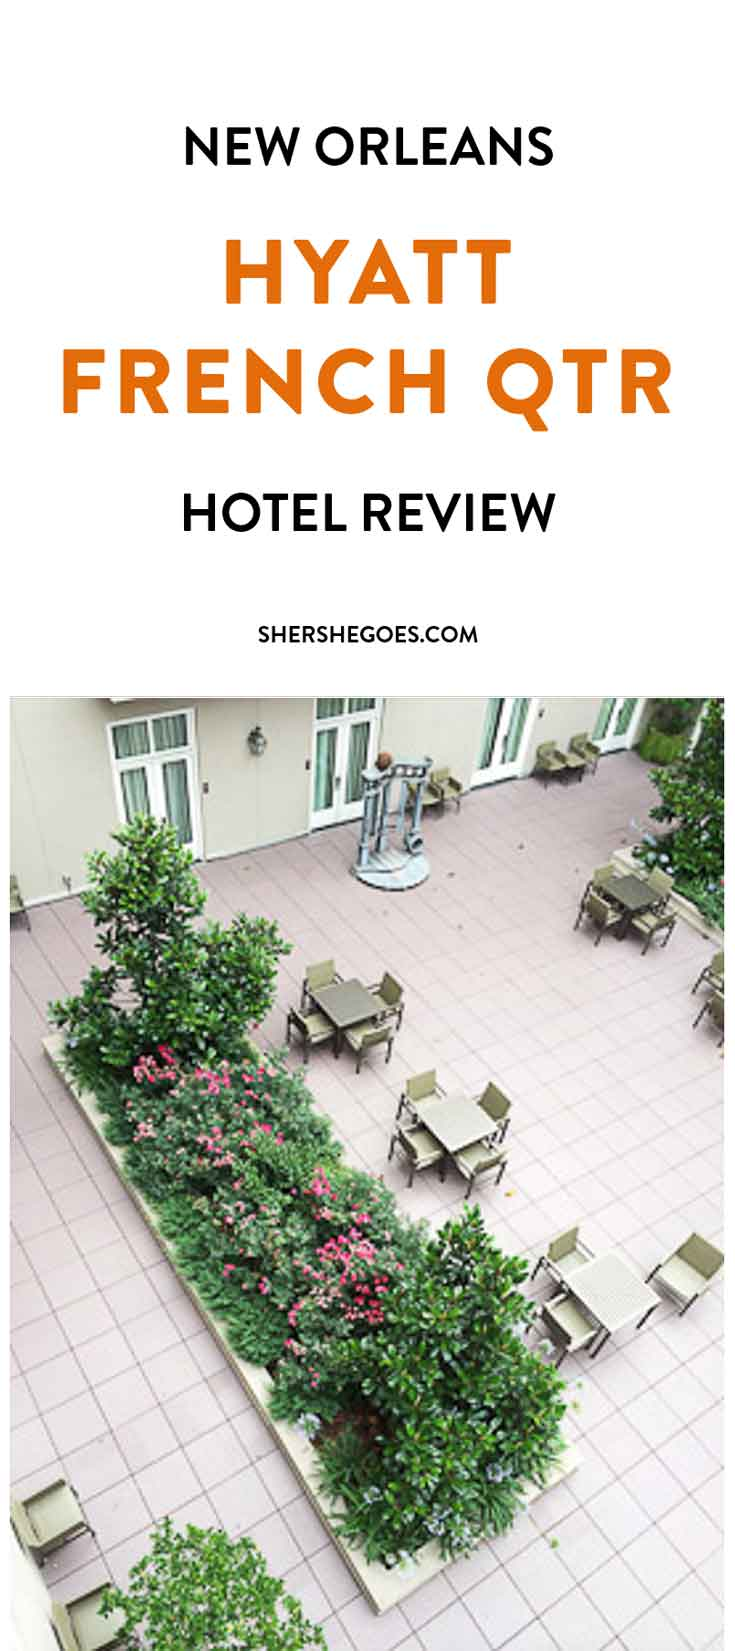 New-Orleans-Hyatt-French-Quarter-hotel-review-shershegoes